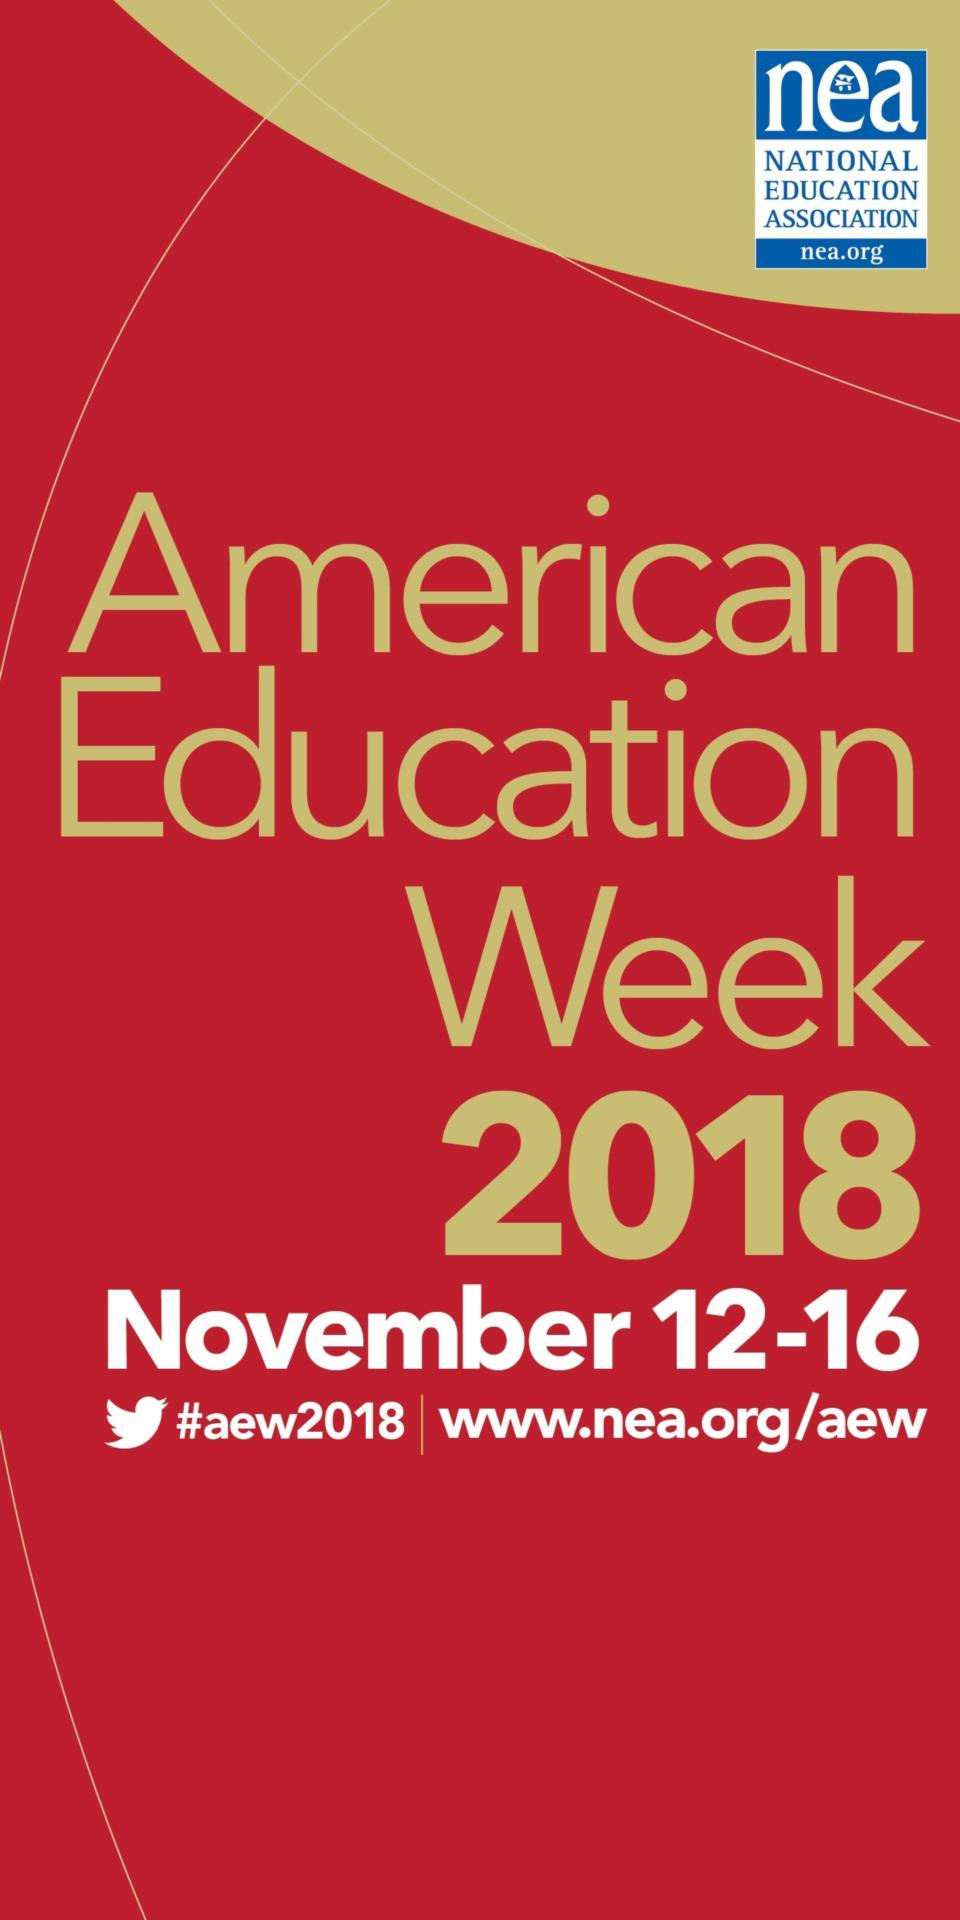 American Education Week 2018